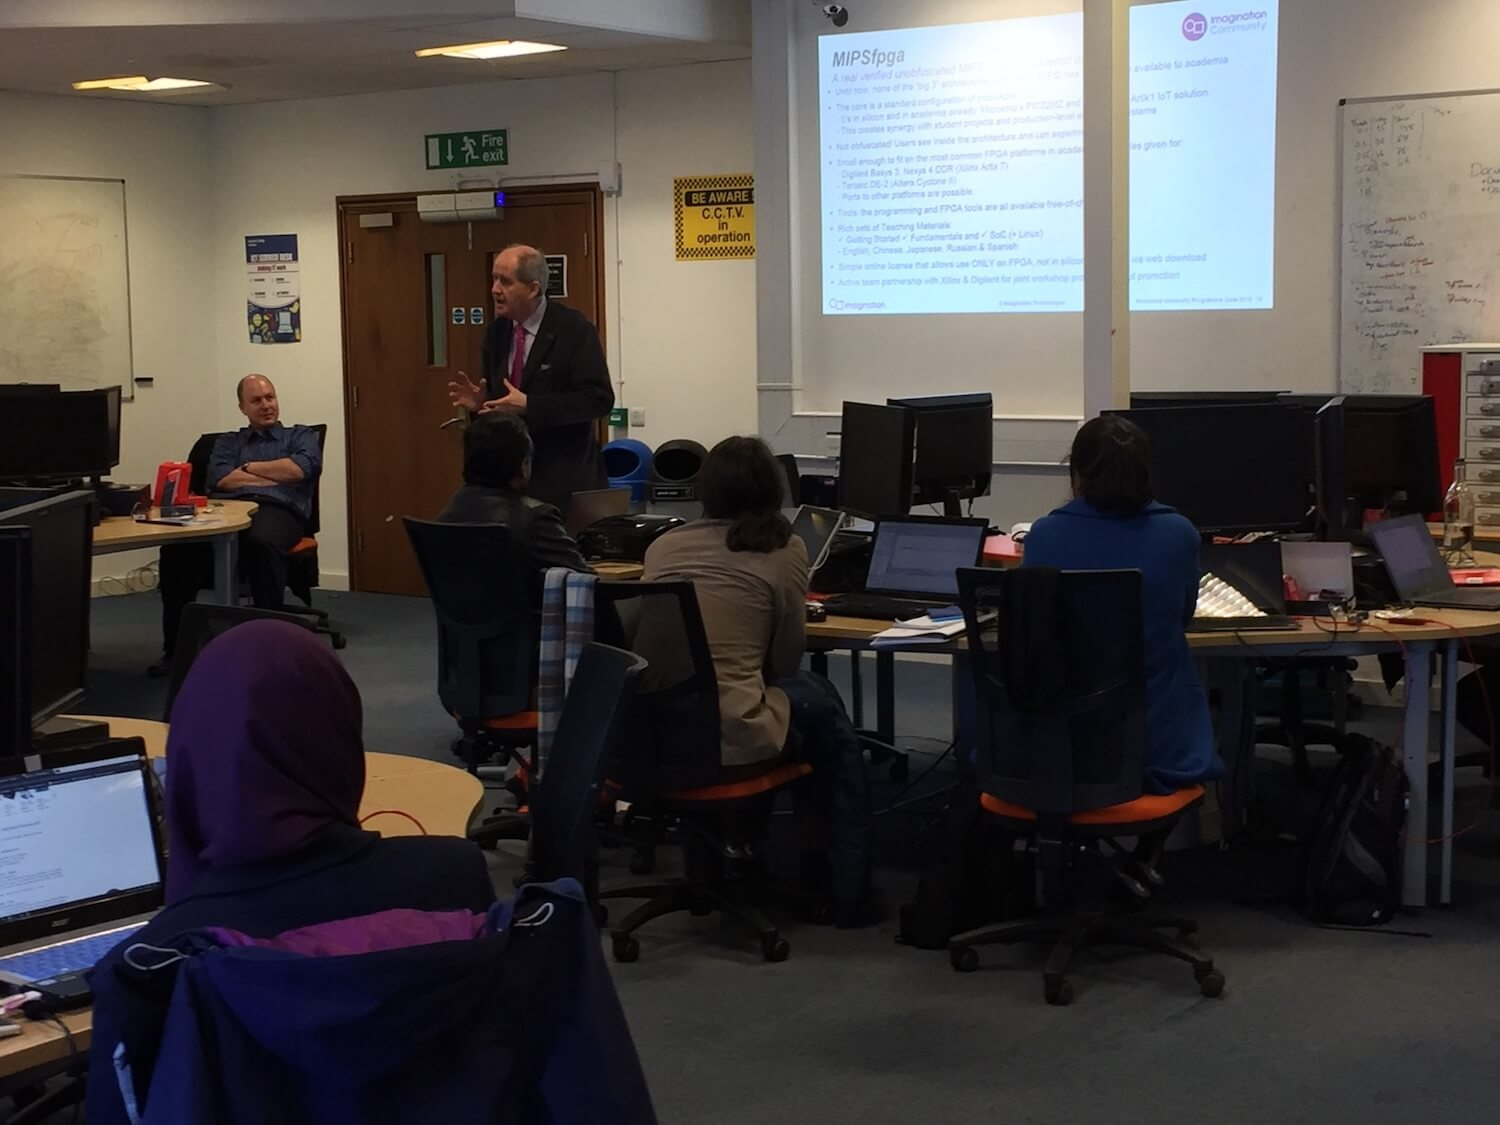 Imagination University Programme MIPSfpga Workshop at Imperial College, January 2016